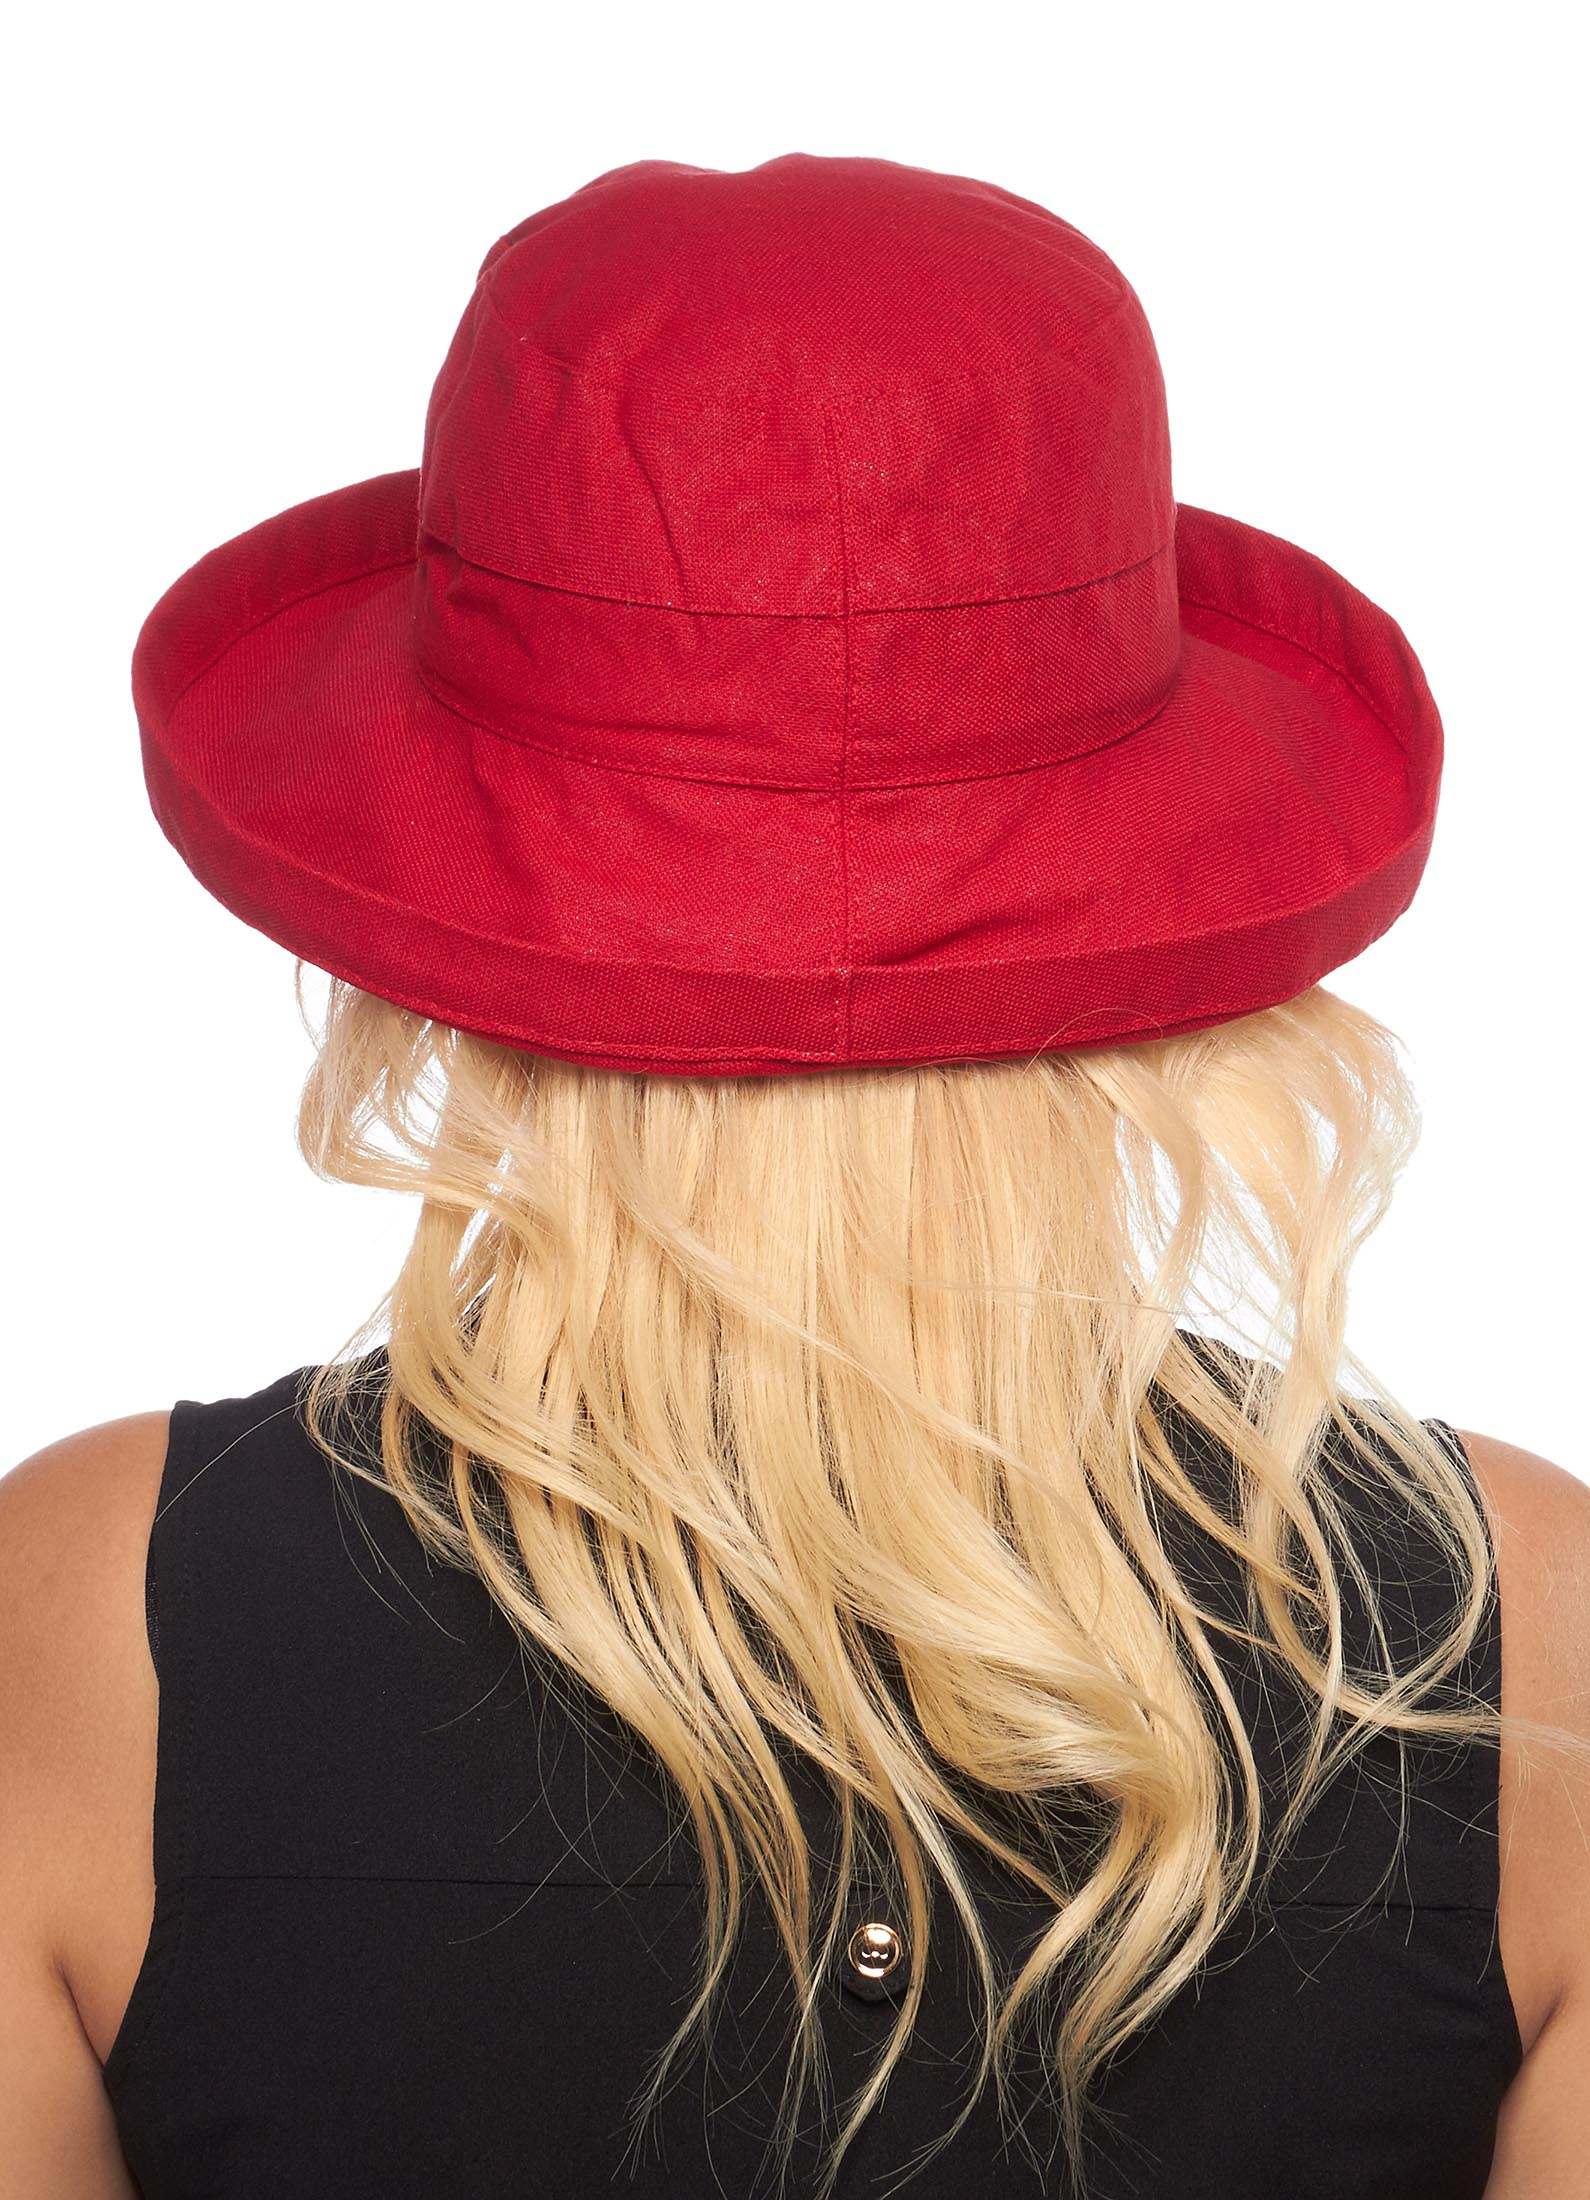 Greatlookz Cozumel Medium Brim Scala Cotton Sun Hat for Ladies  8826094e9e36